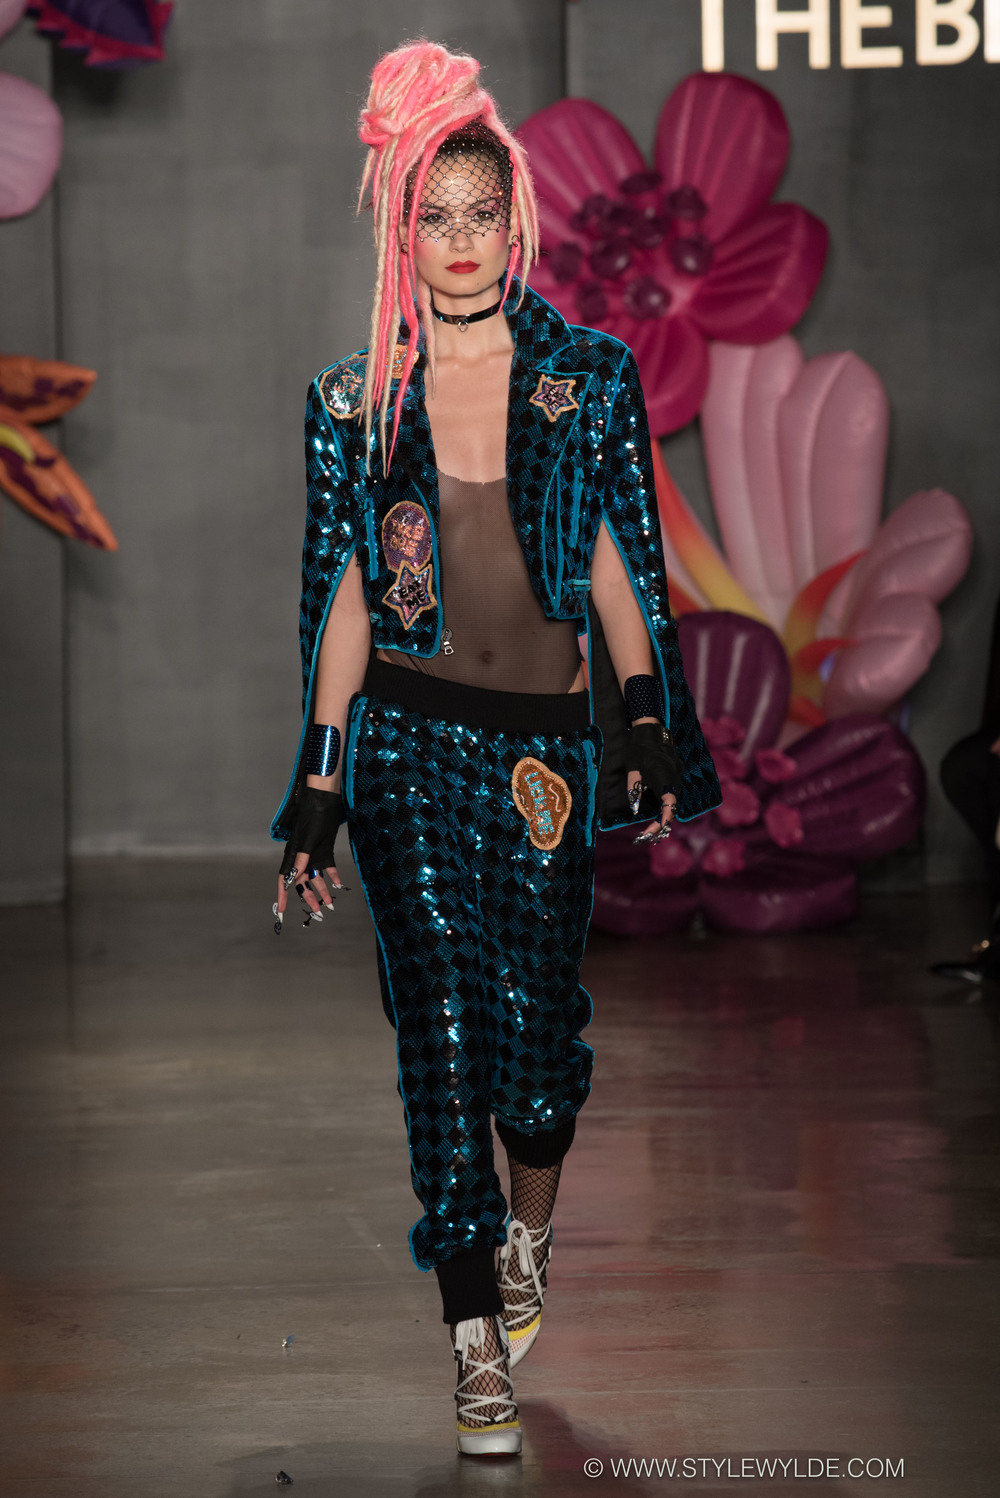 StyleWylde - The Blonds AW16 - edited-1-2.jpg